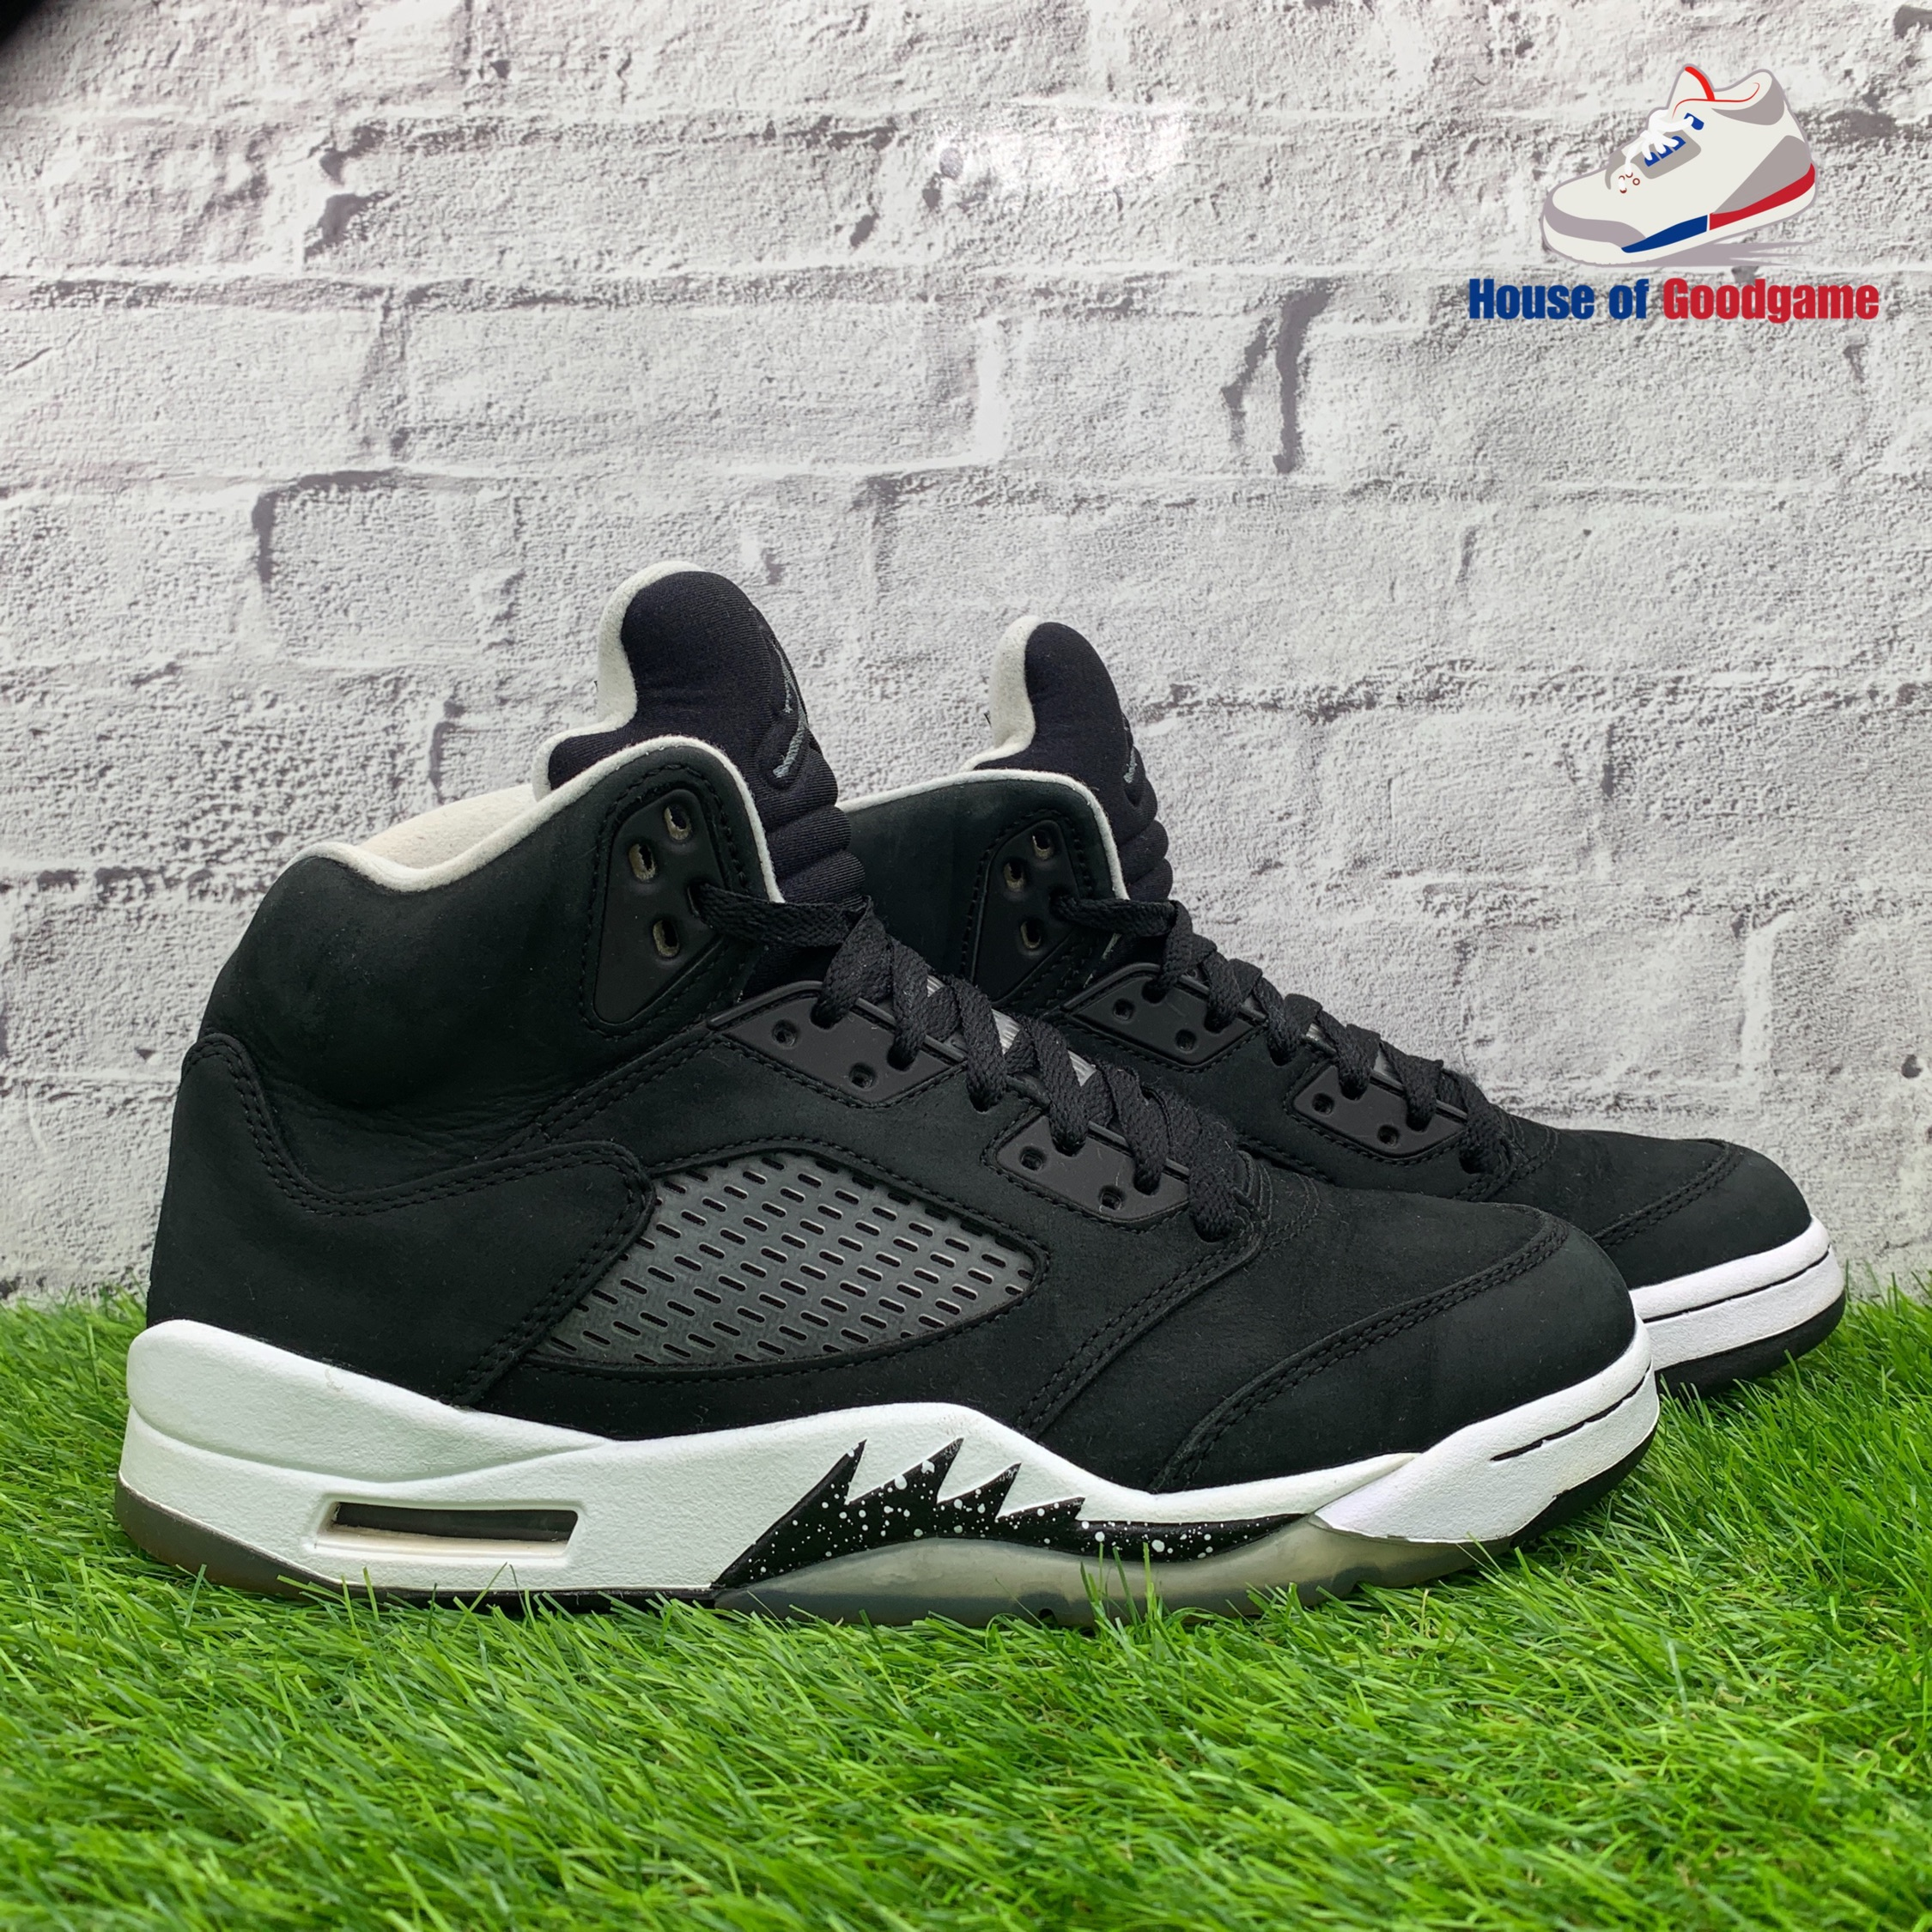 super popular 46aff 9f0a2 Nike Air Jordan 5 Retro 'Oreo'